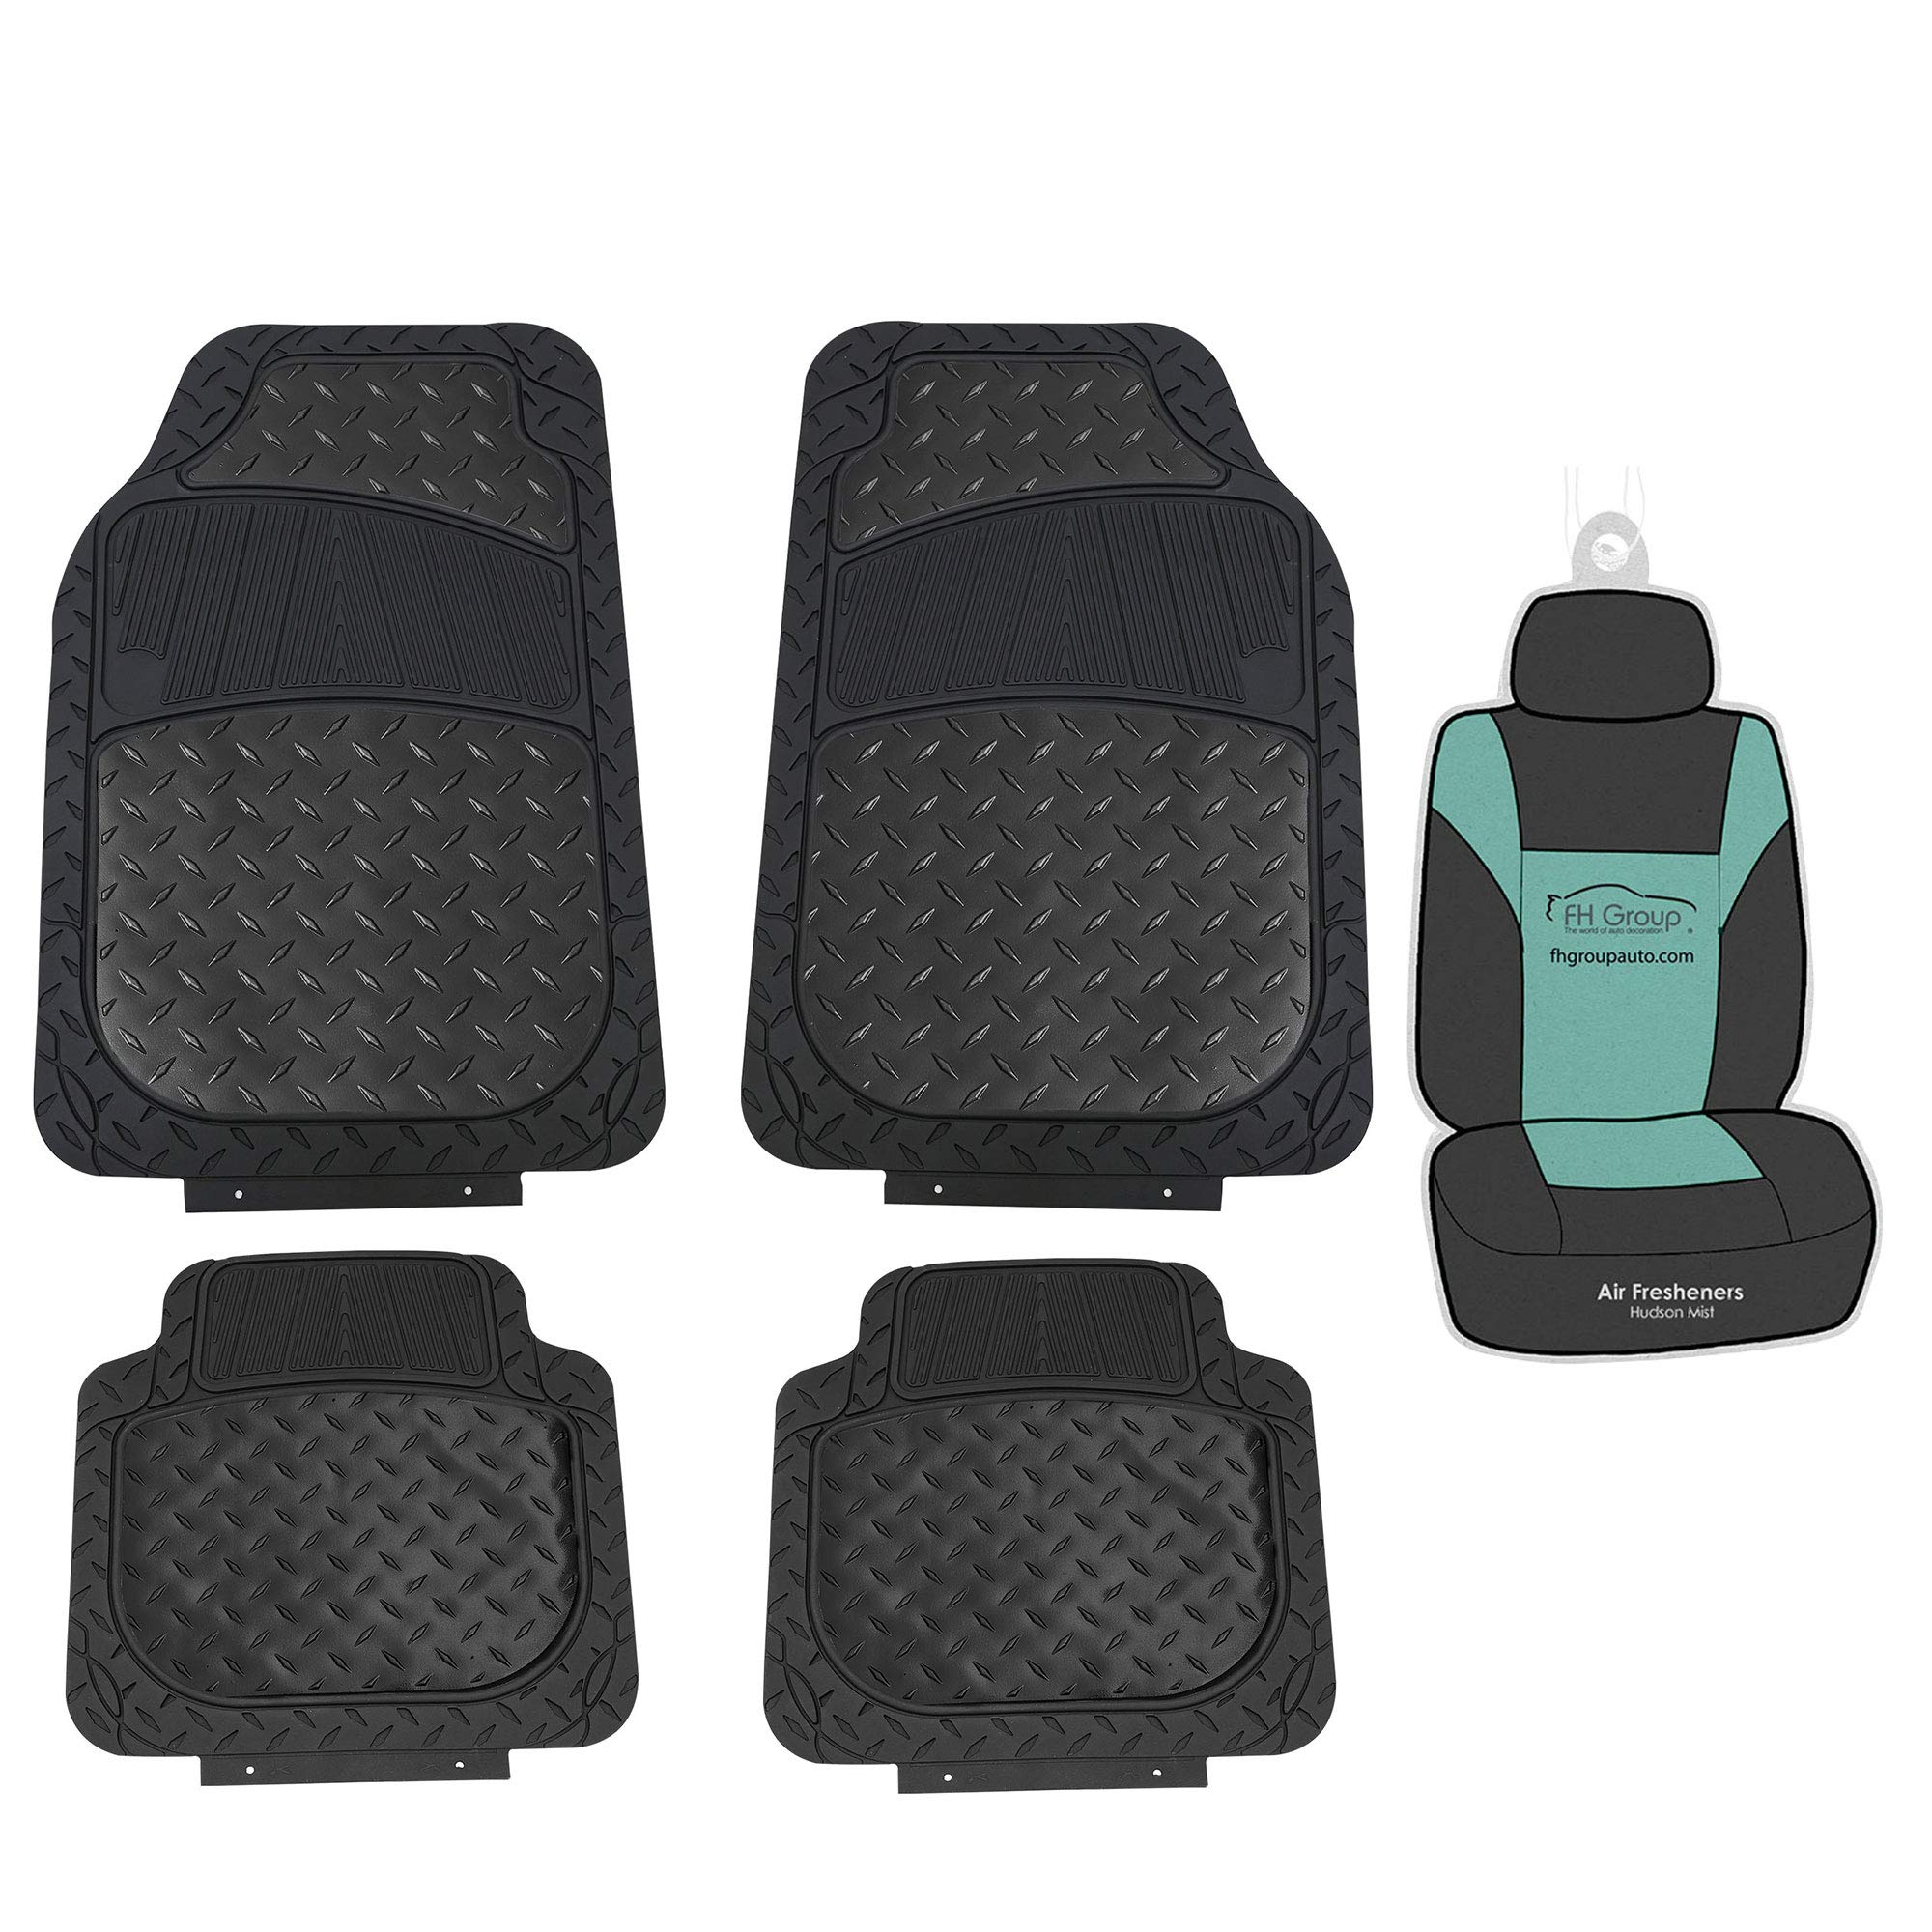 FH Group F11315 Trimmable Metallic Floor Mats (Black) Full Set - Universal Fit for Cars Trucks and SUVs